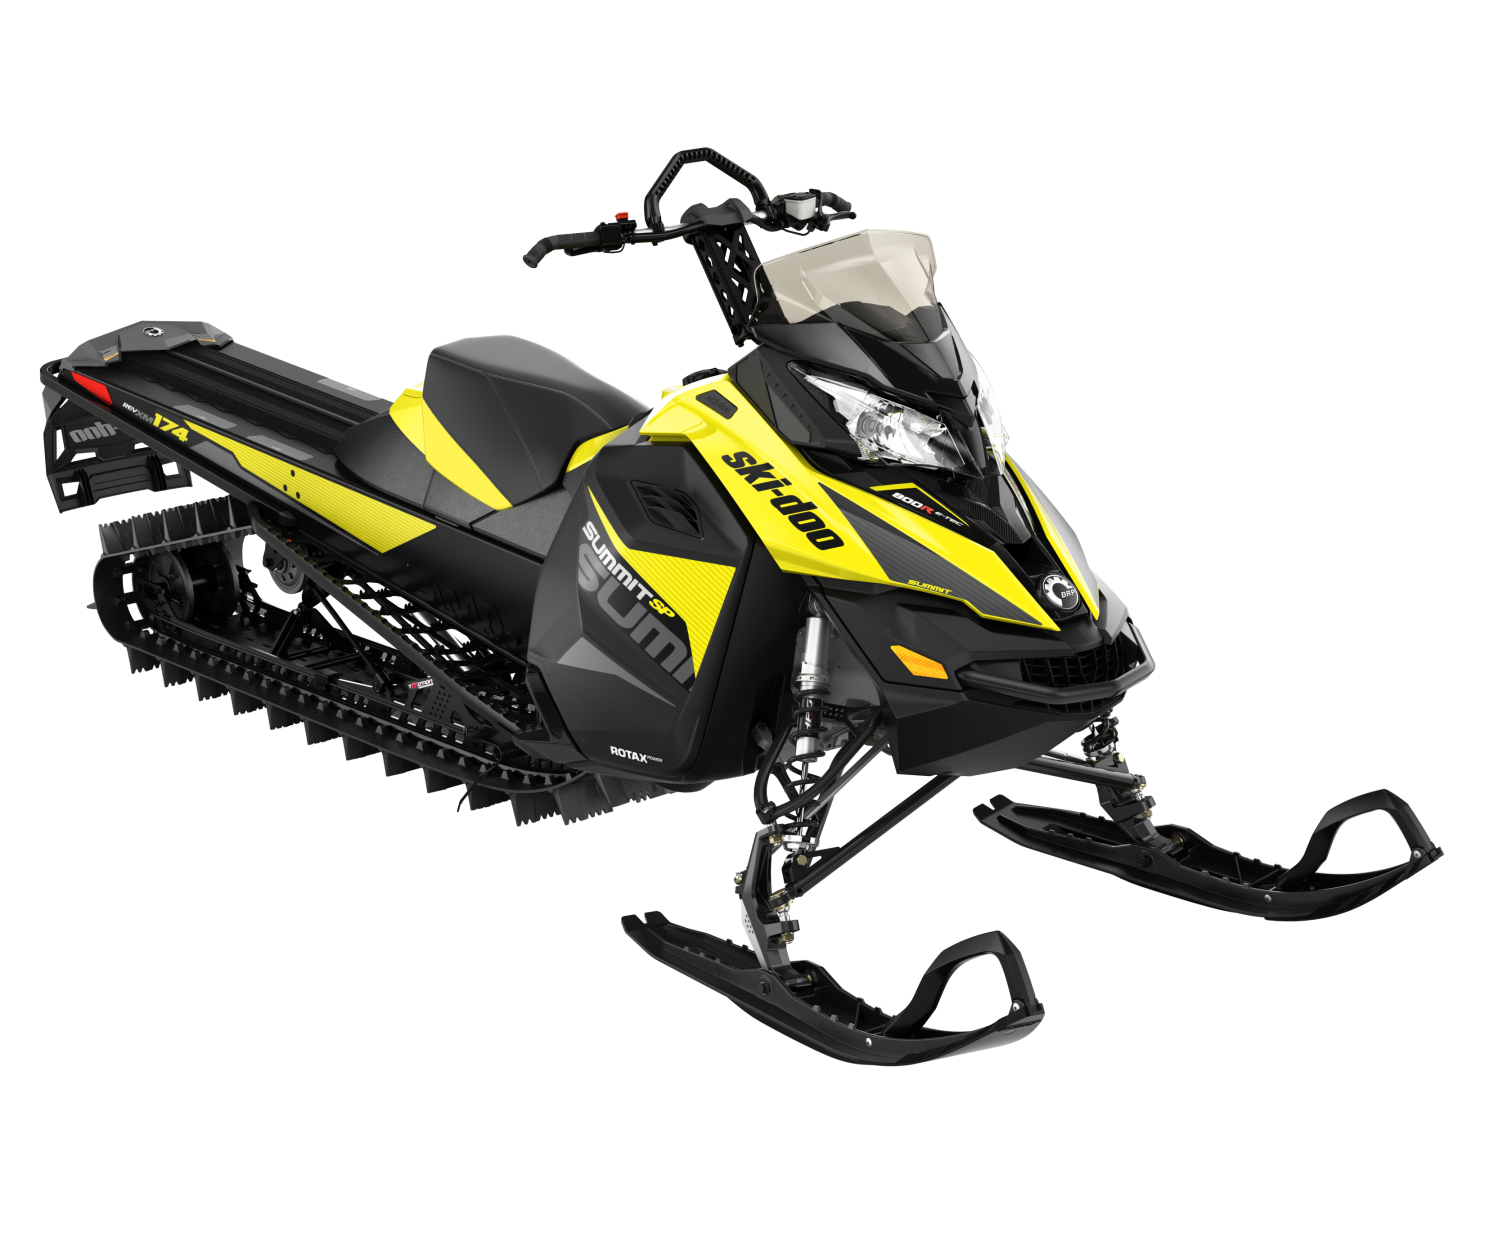 2017 Ski Doo Summit Sp 800r E-tec 174 Es Yellow/black